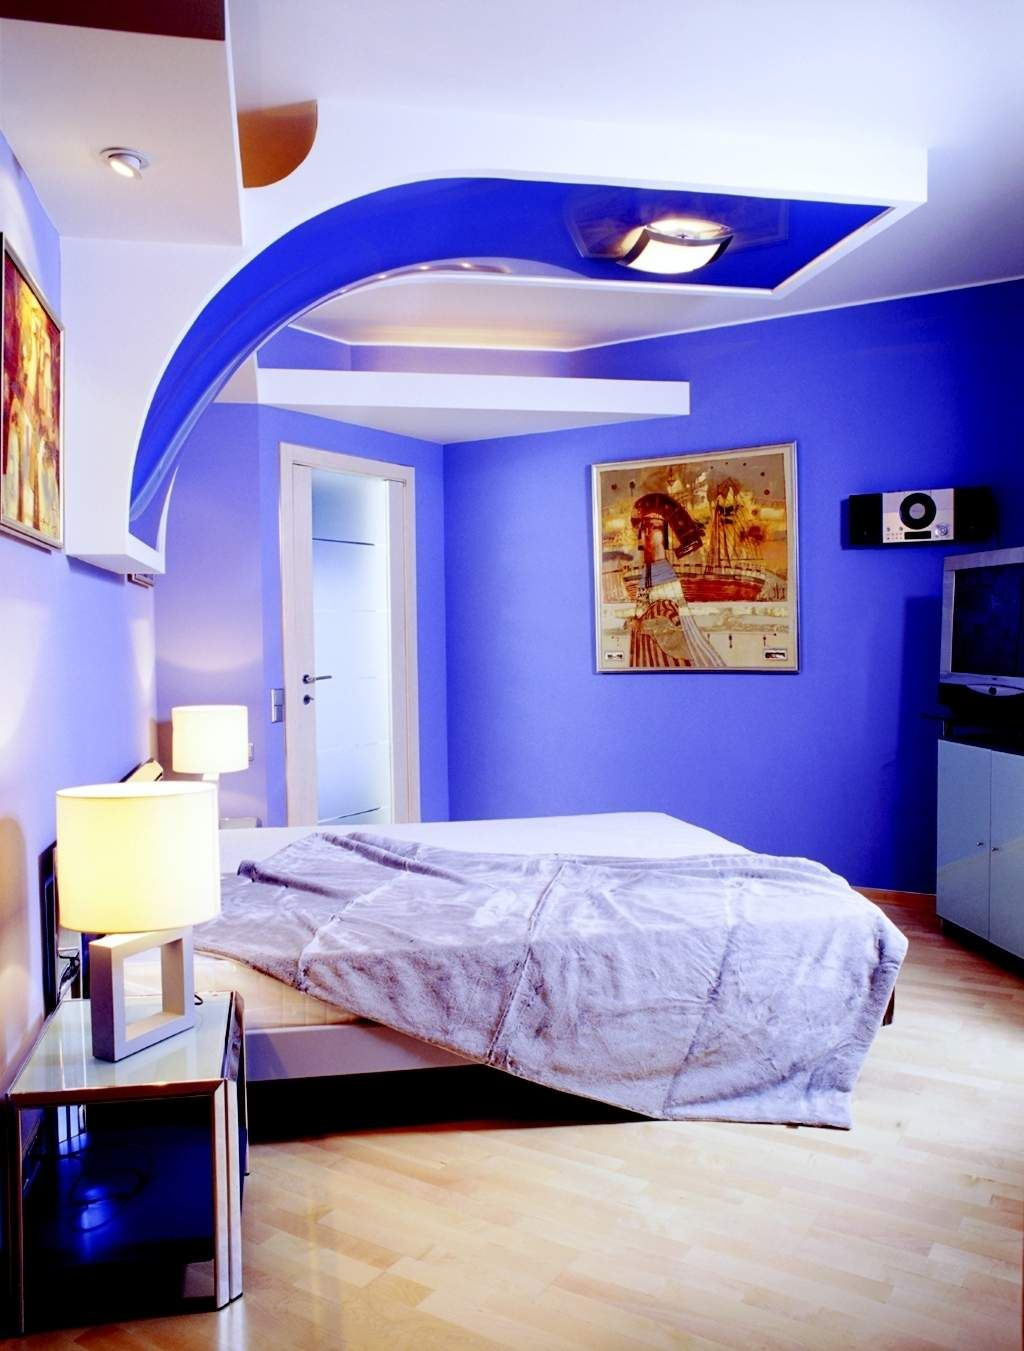 Room color ideas for bedroom - Kids Bedroom Futuristic Design Of Boys Bedroom In Bright Blue And White Color Scheme Cool Color